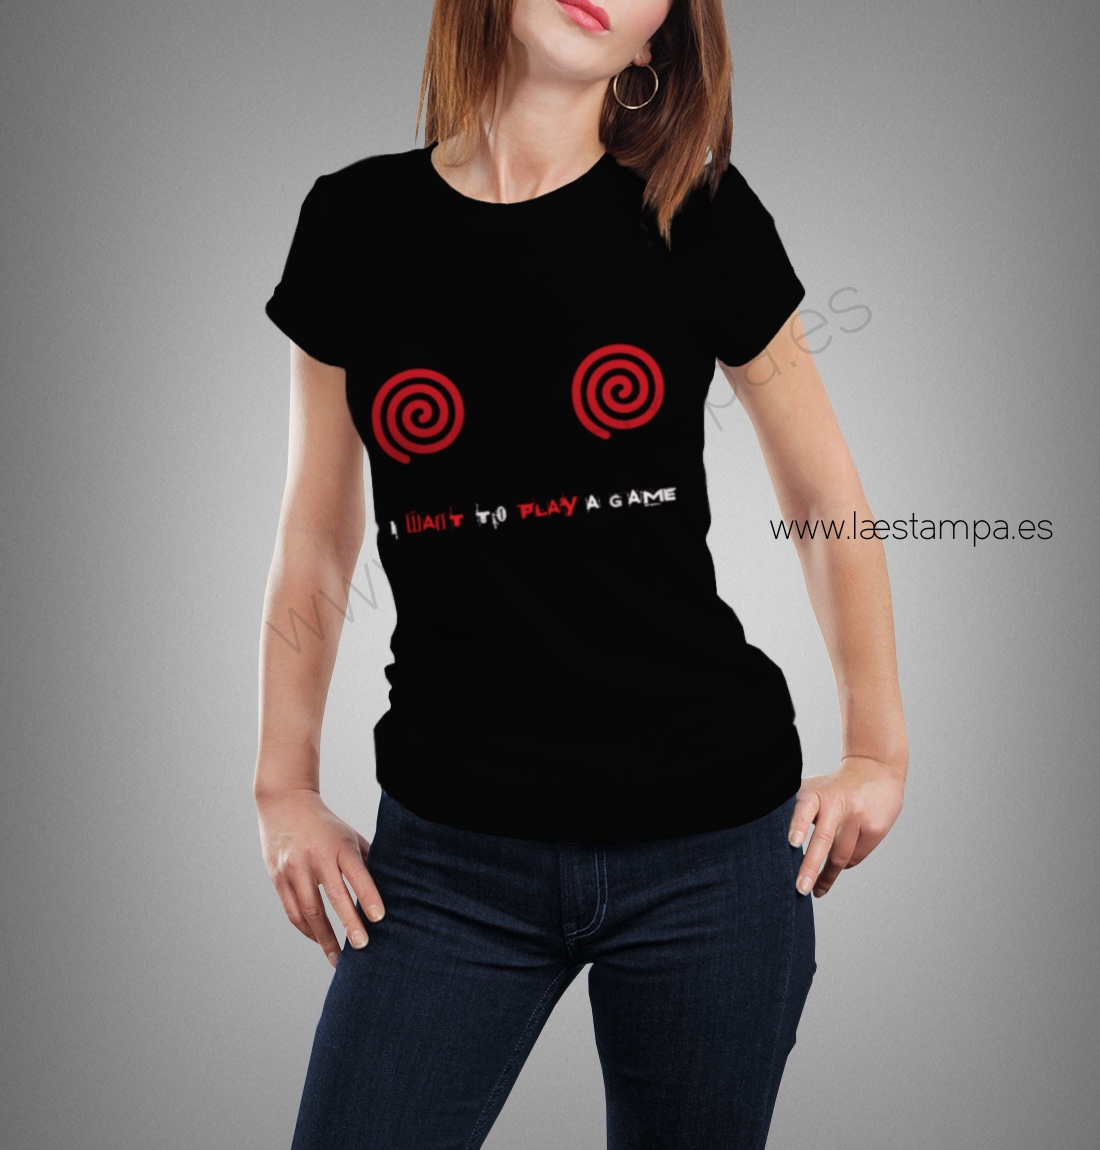 saw camiseta i want a play a game